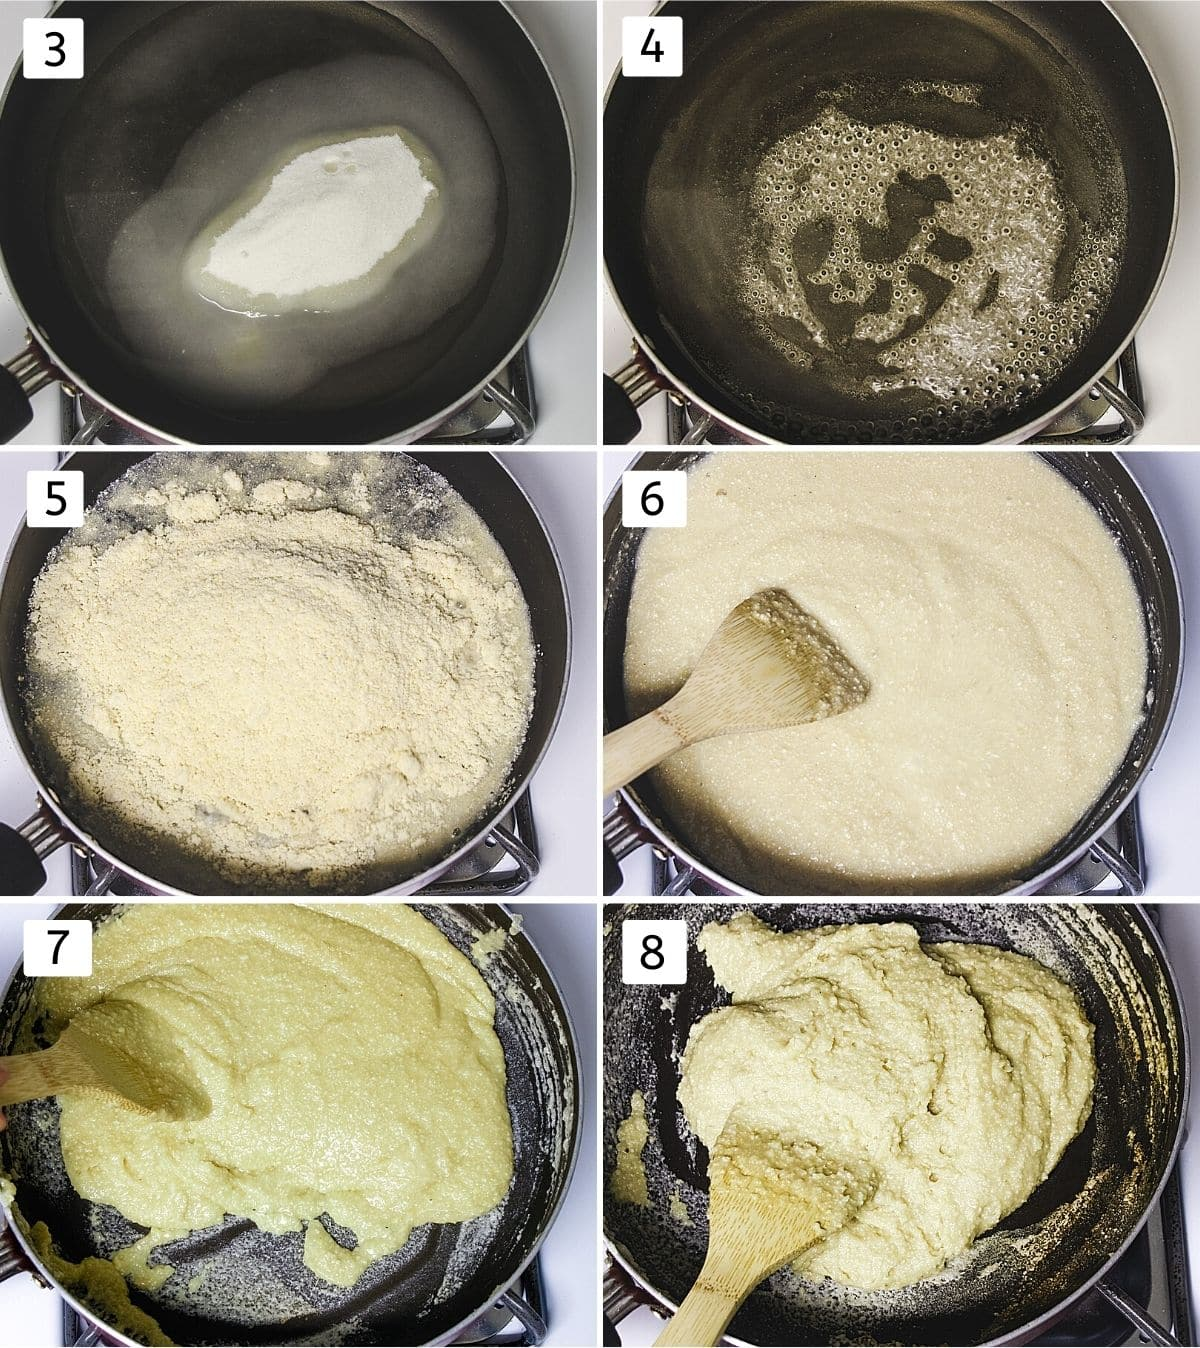 Collage of 6 images showing sugar, water in a pan, simmering syrup, adding cashew powder, mixing, cooking and ready dough